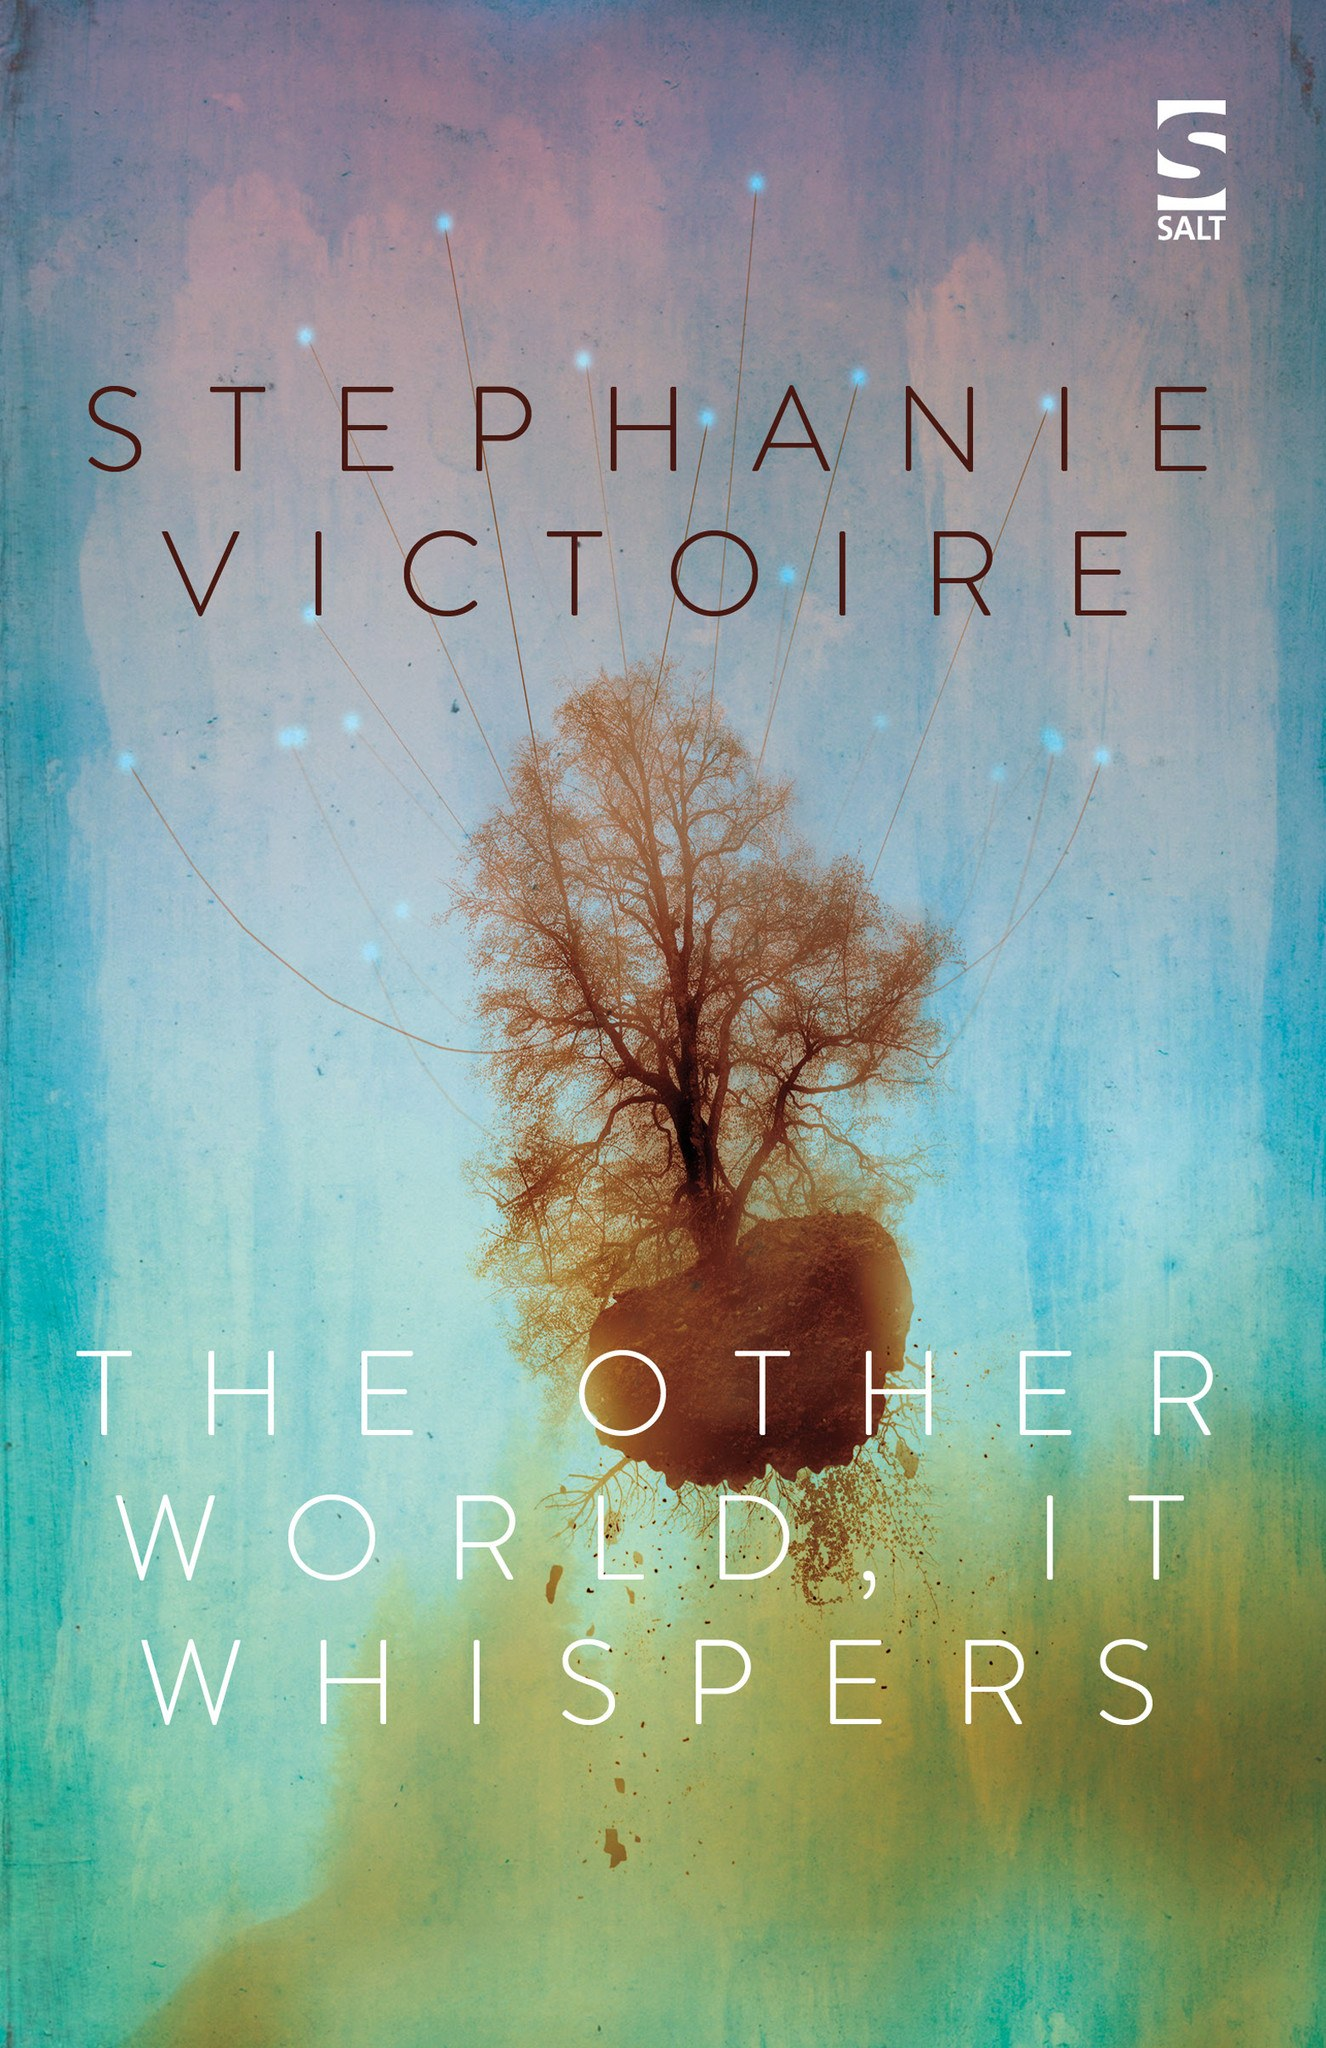 THE OTHER WORLD, IT WHISPERS....https://storgy.com/2017/02/18/book-review-the-other-world-it-whispers-by-stephanie-victoire/